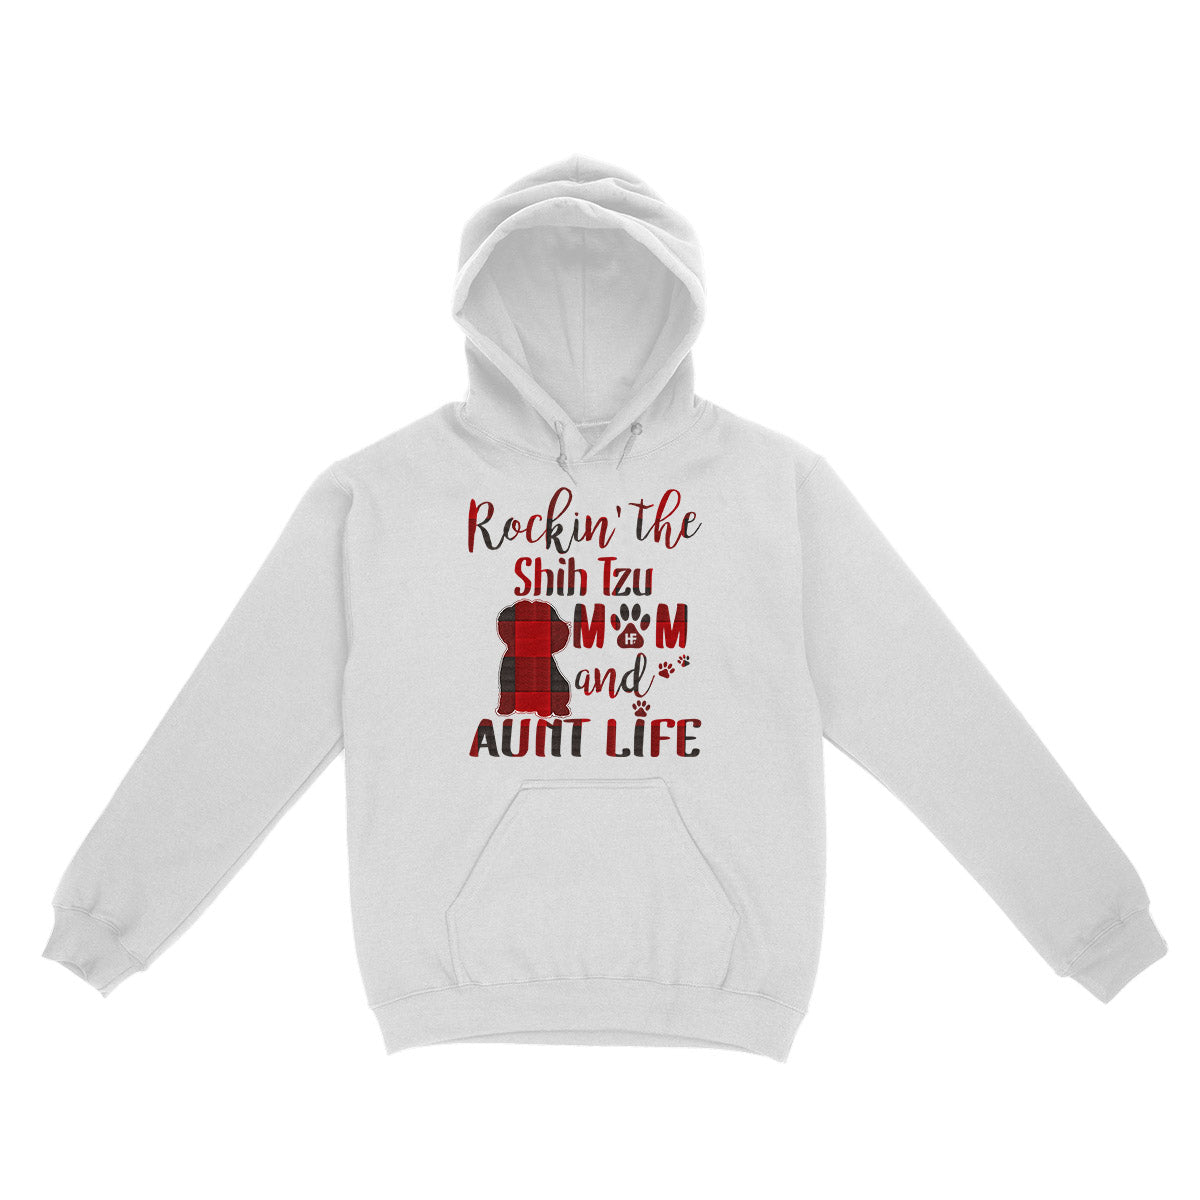 Rockin The Shih Tzu Mom and Aunt Life EZ03 3103 Hoodie